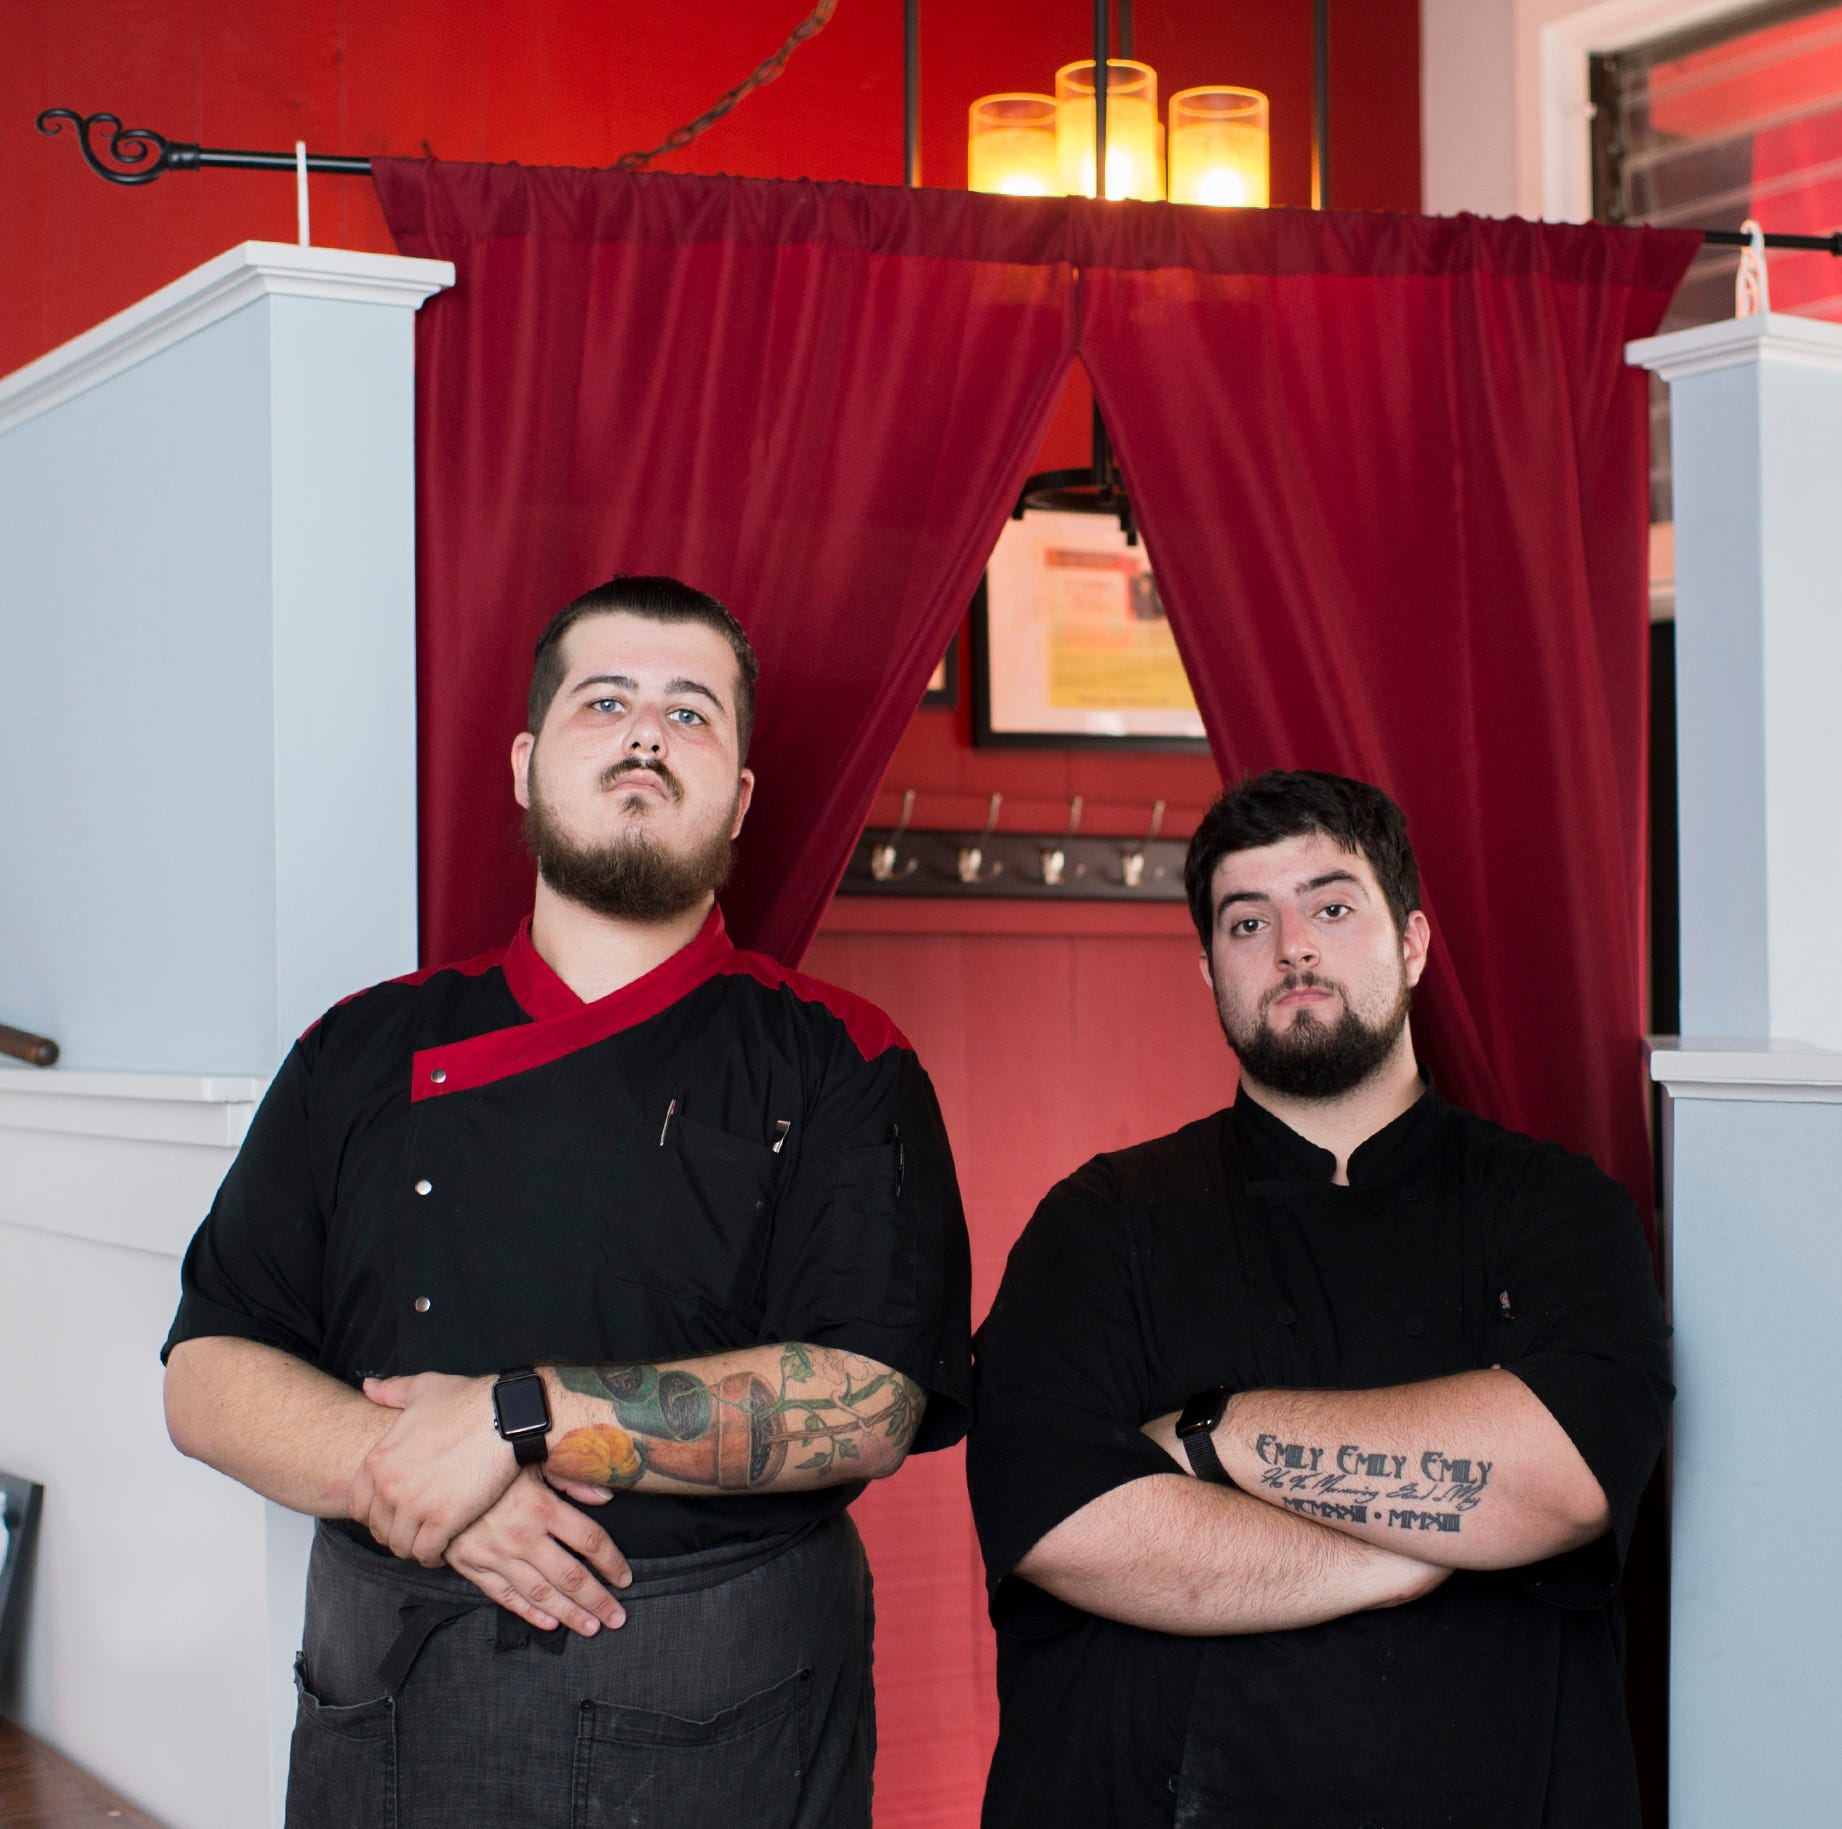 C.C.'s Kitchen, a Haddon Heights BYOB, has growing to do but it's delicious to follow along